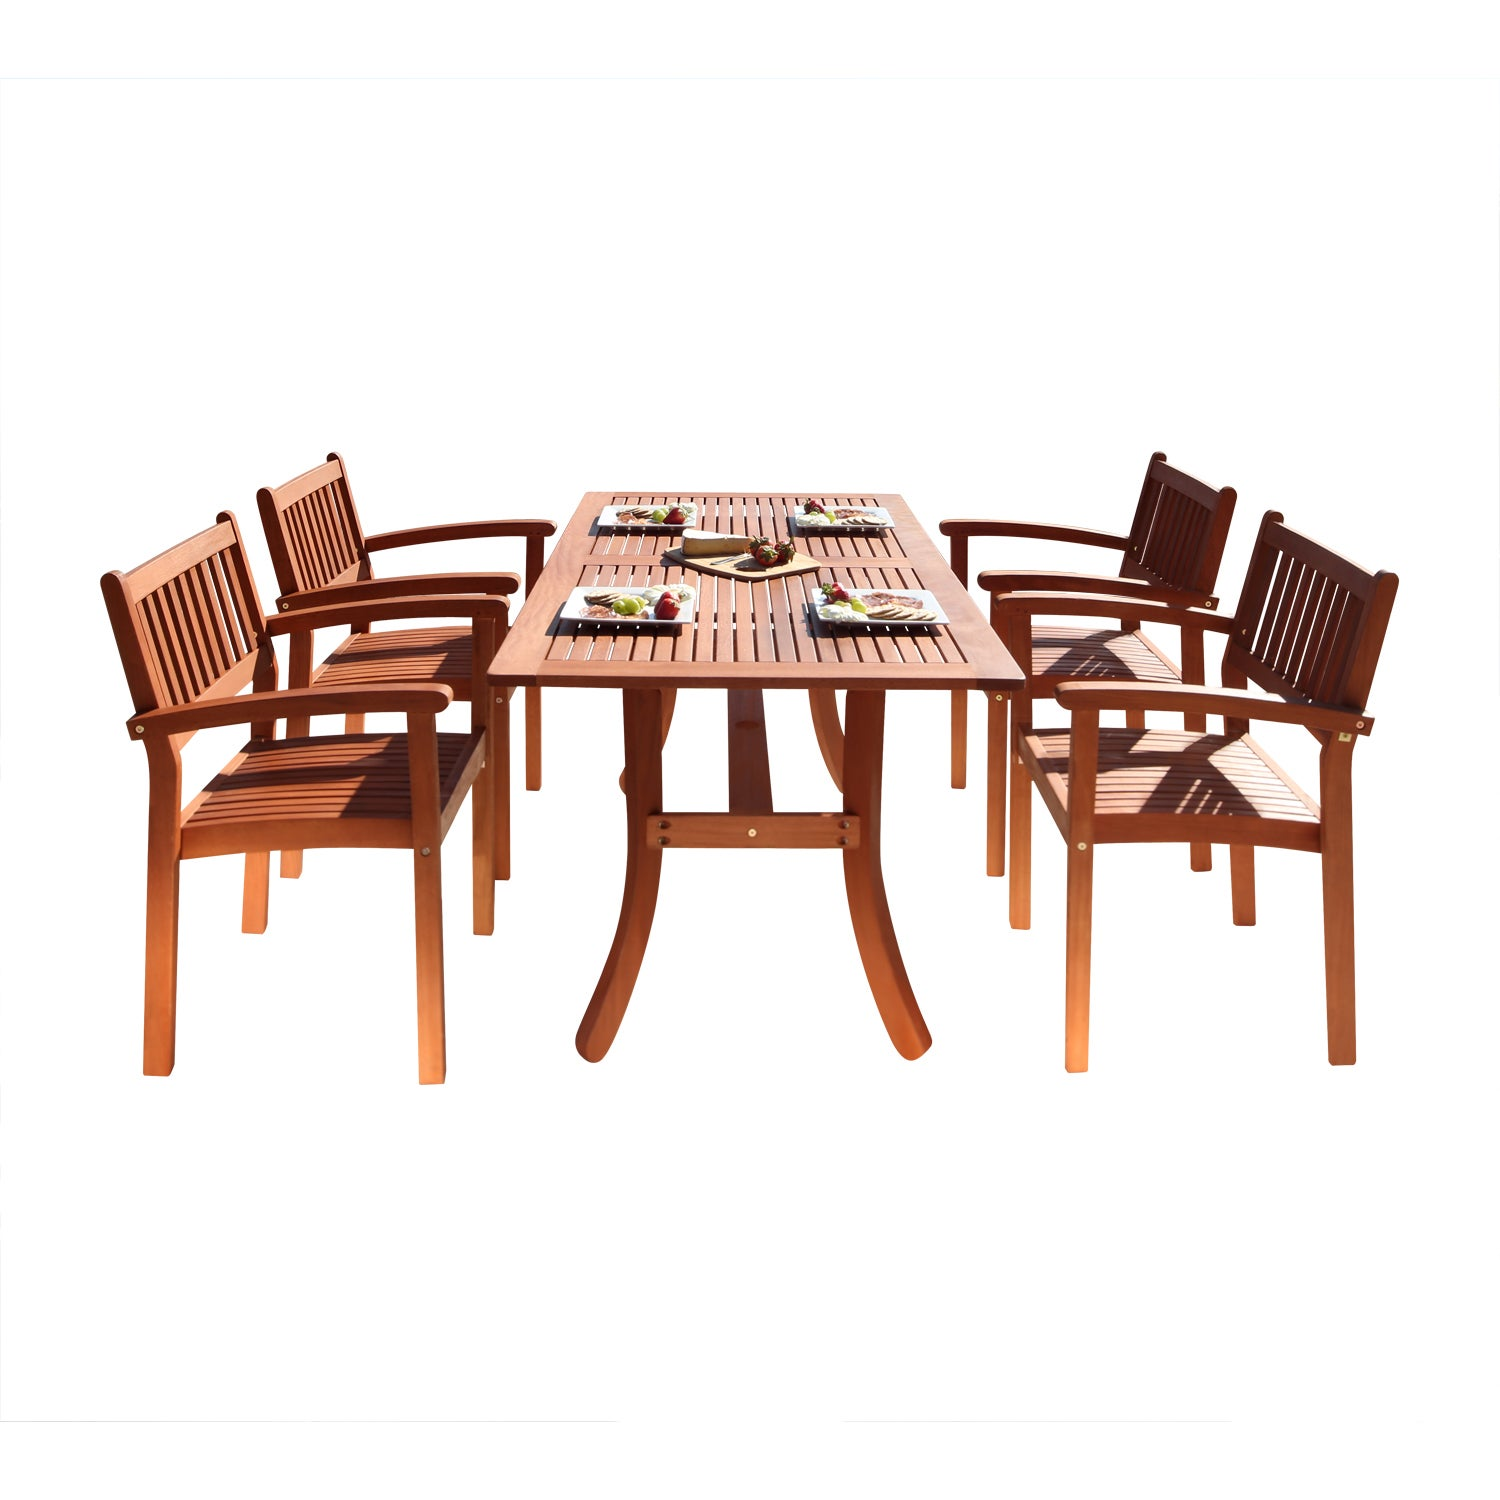 Delicieux Shop The Gray Barn Bluebird 5 Piece Eucalyptus Wood Outdoor Dining Set With  Curved Table   Free Shipping Today   Overstock.com   22801974